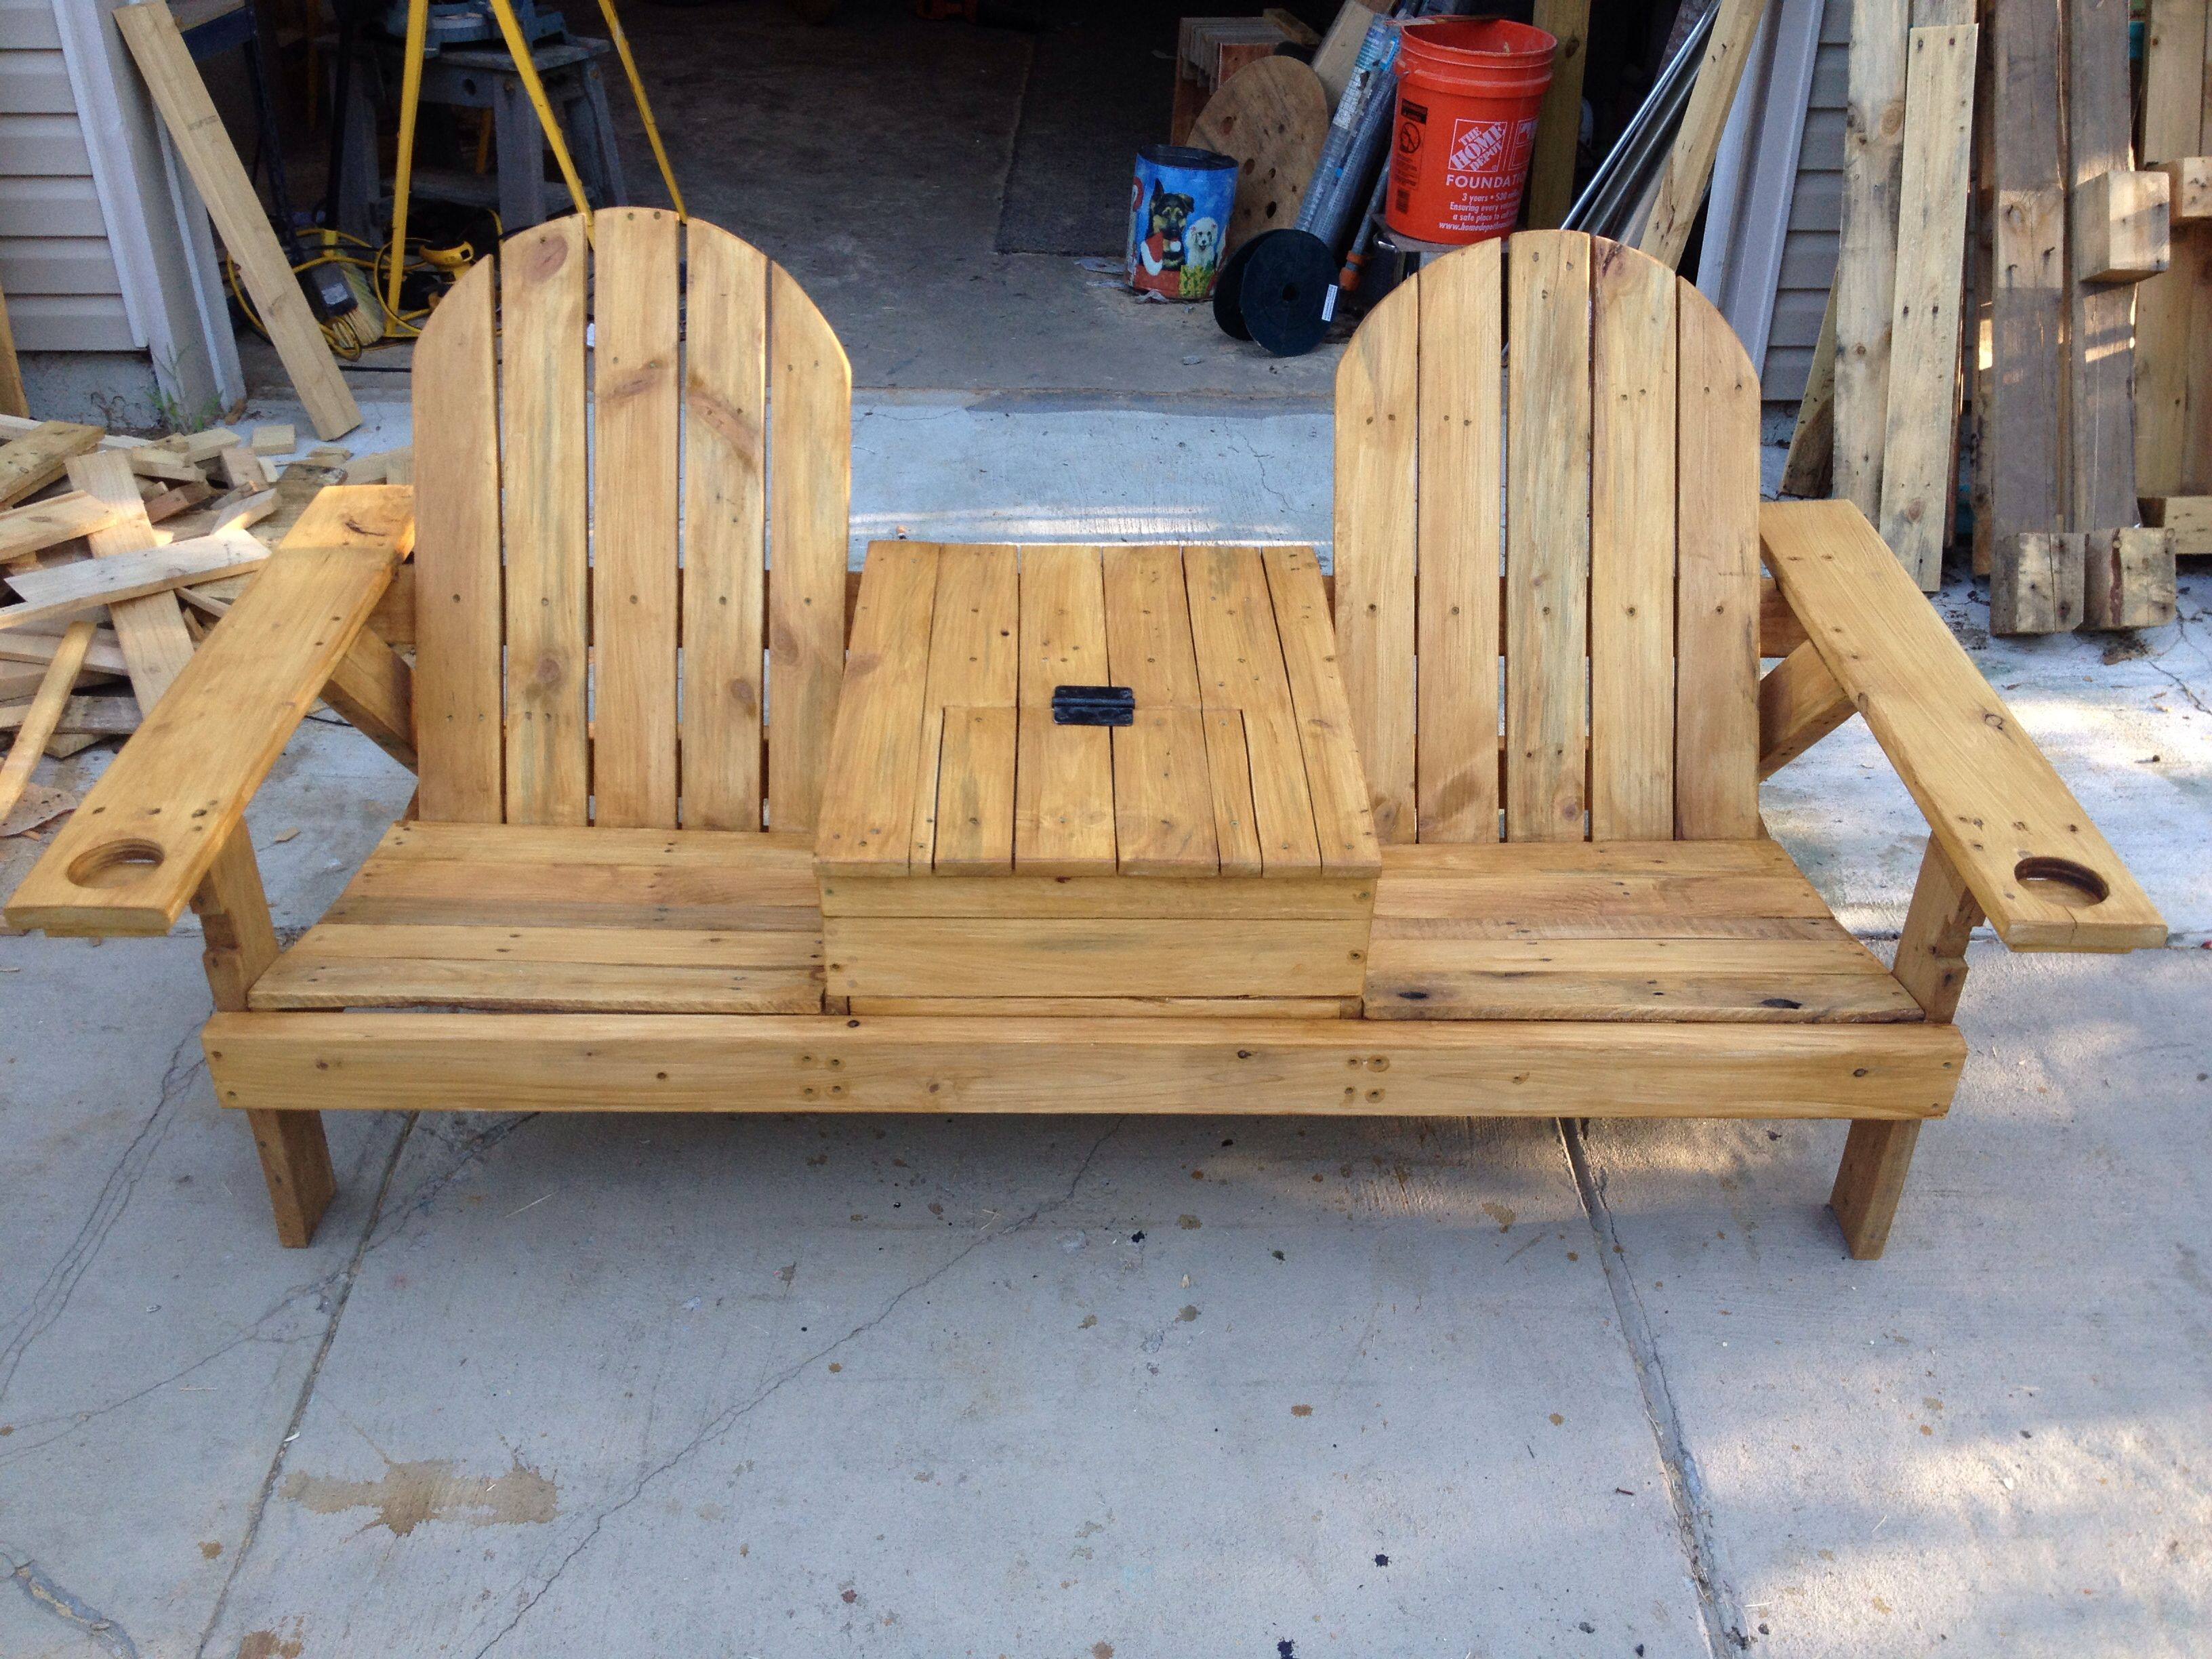 Pallet Wood Bench With Cooler Wooden Lounge Chair Pallet Furniture Outdoor Chair Bench